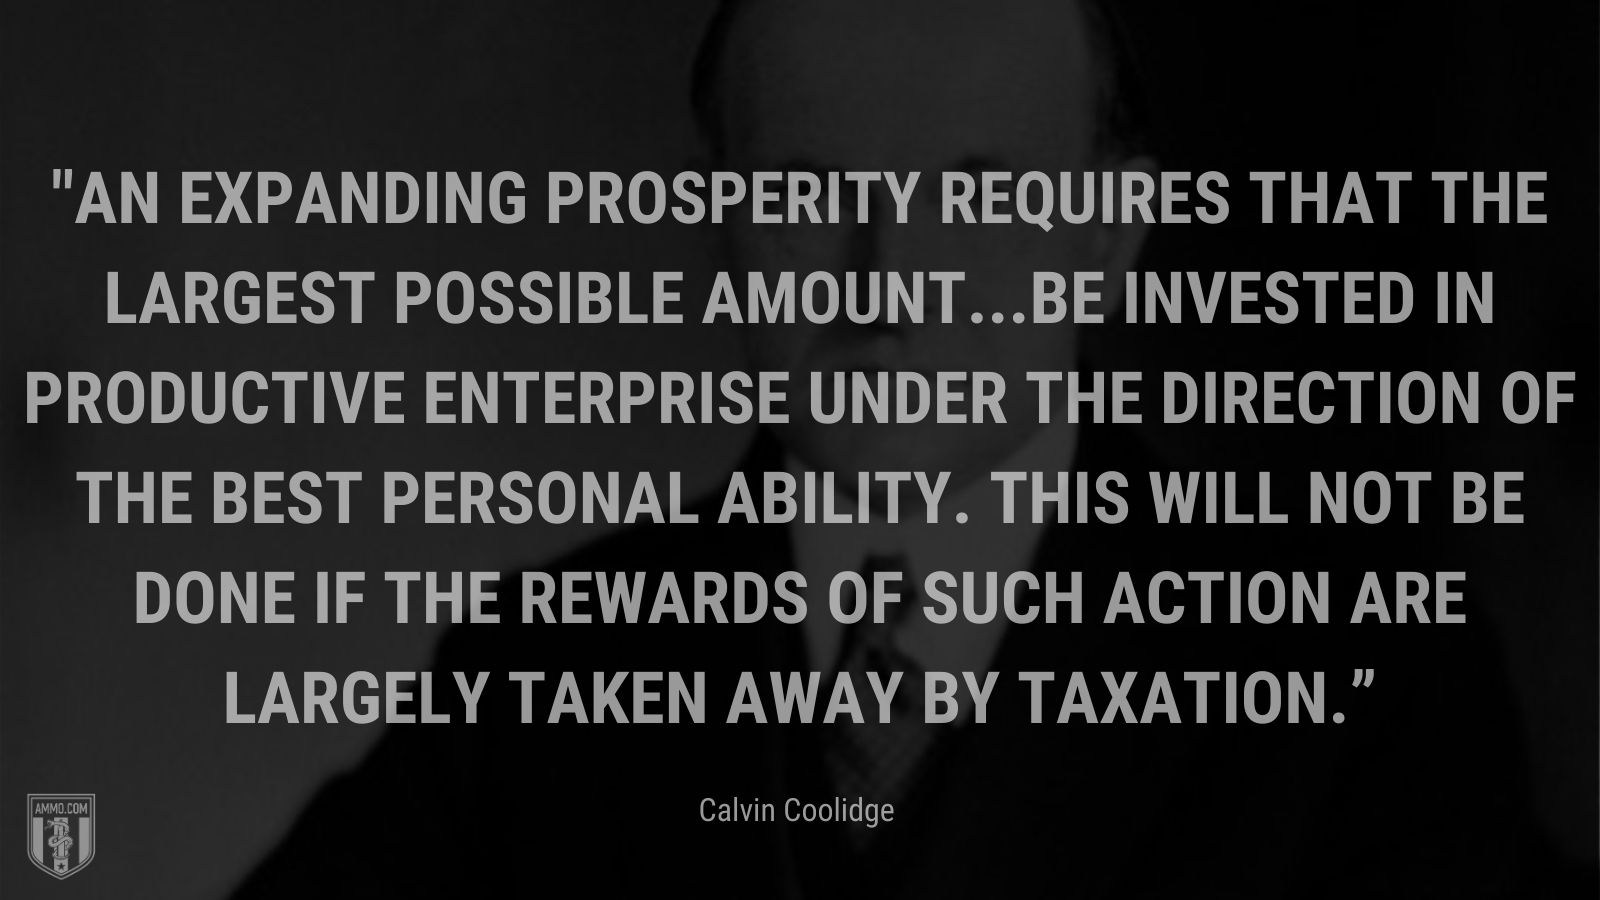 """""""An expanding prosperity requires that the largest possible amount...be invested in productive enterprise under the direction of the best personal ability. This will not be done if the rewards of such action are largely taken away by taxation."""" - Calvin Coolidge"""